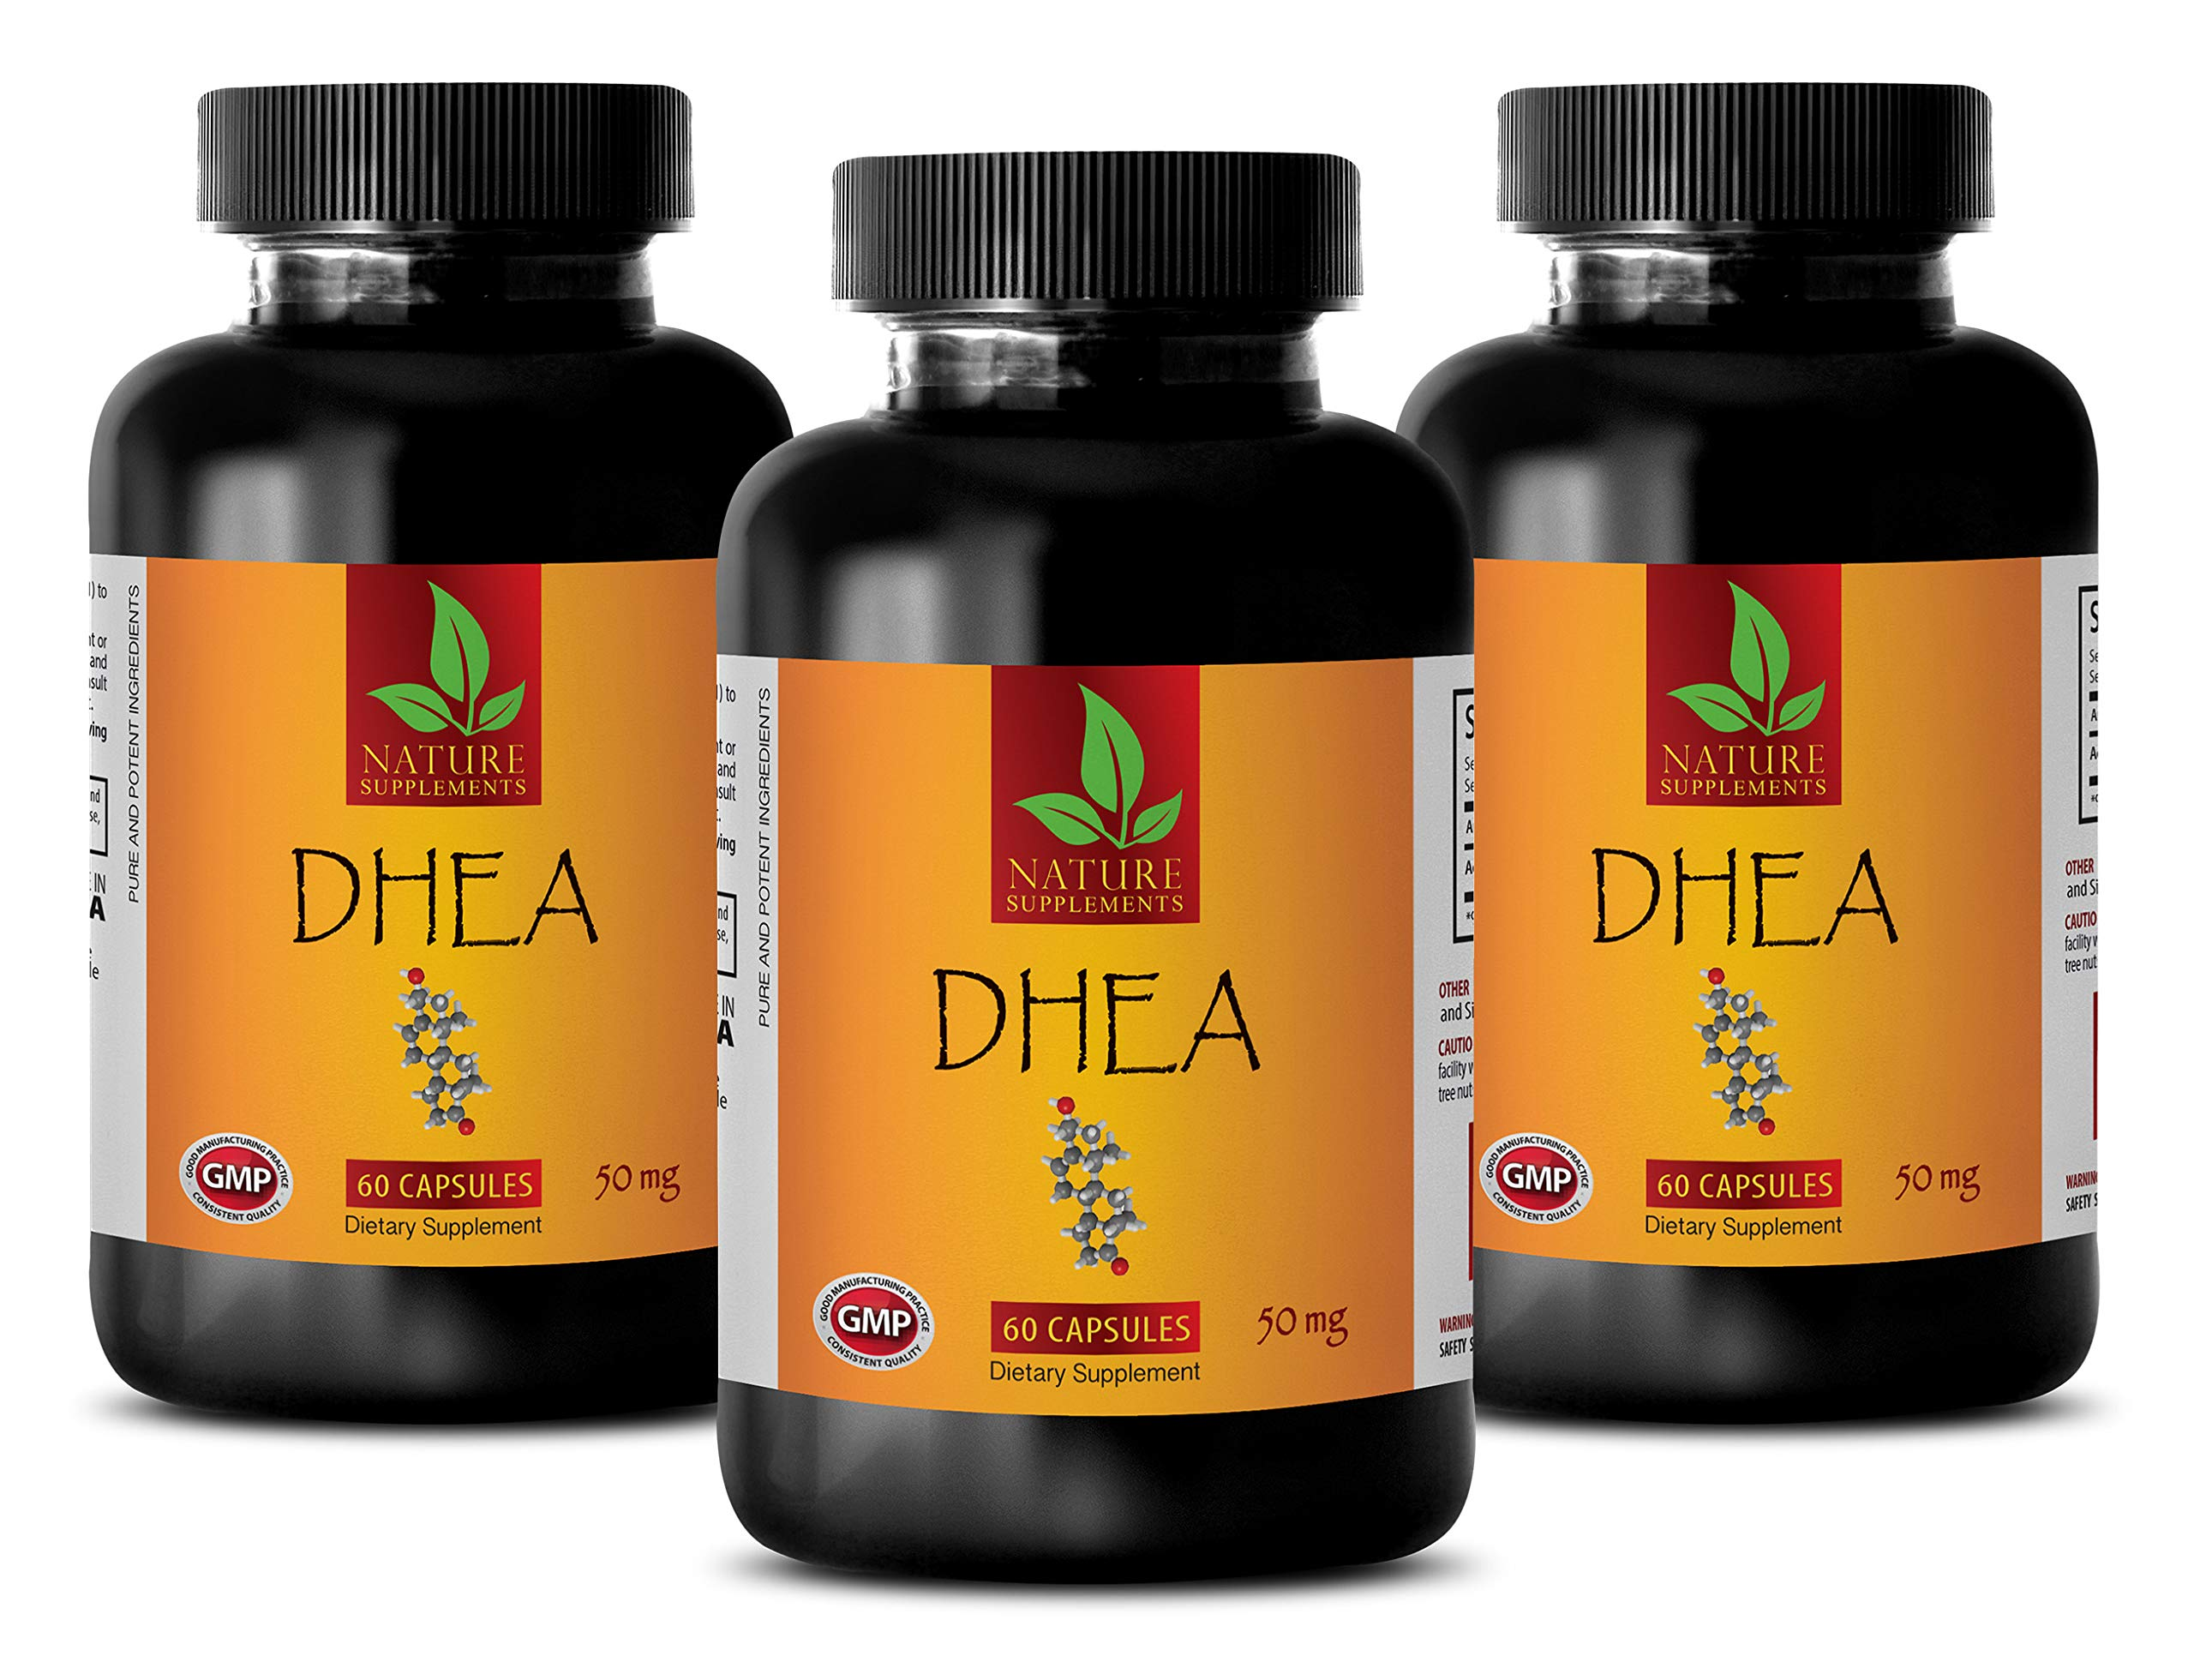 Natural Energy Supplements for Women - DHEA 50MG - libido Booster for Men - 3 Bottles (180 Capsules)